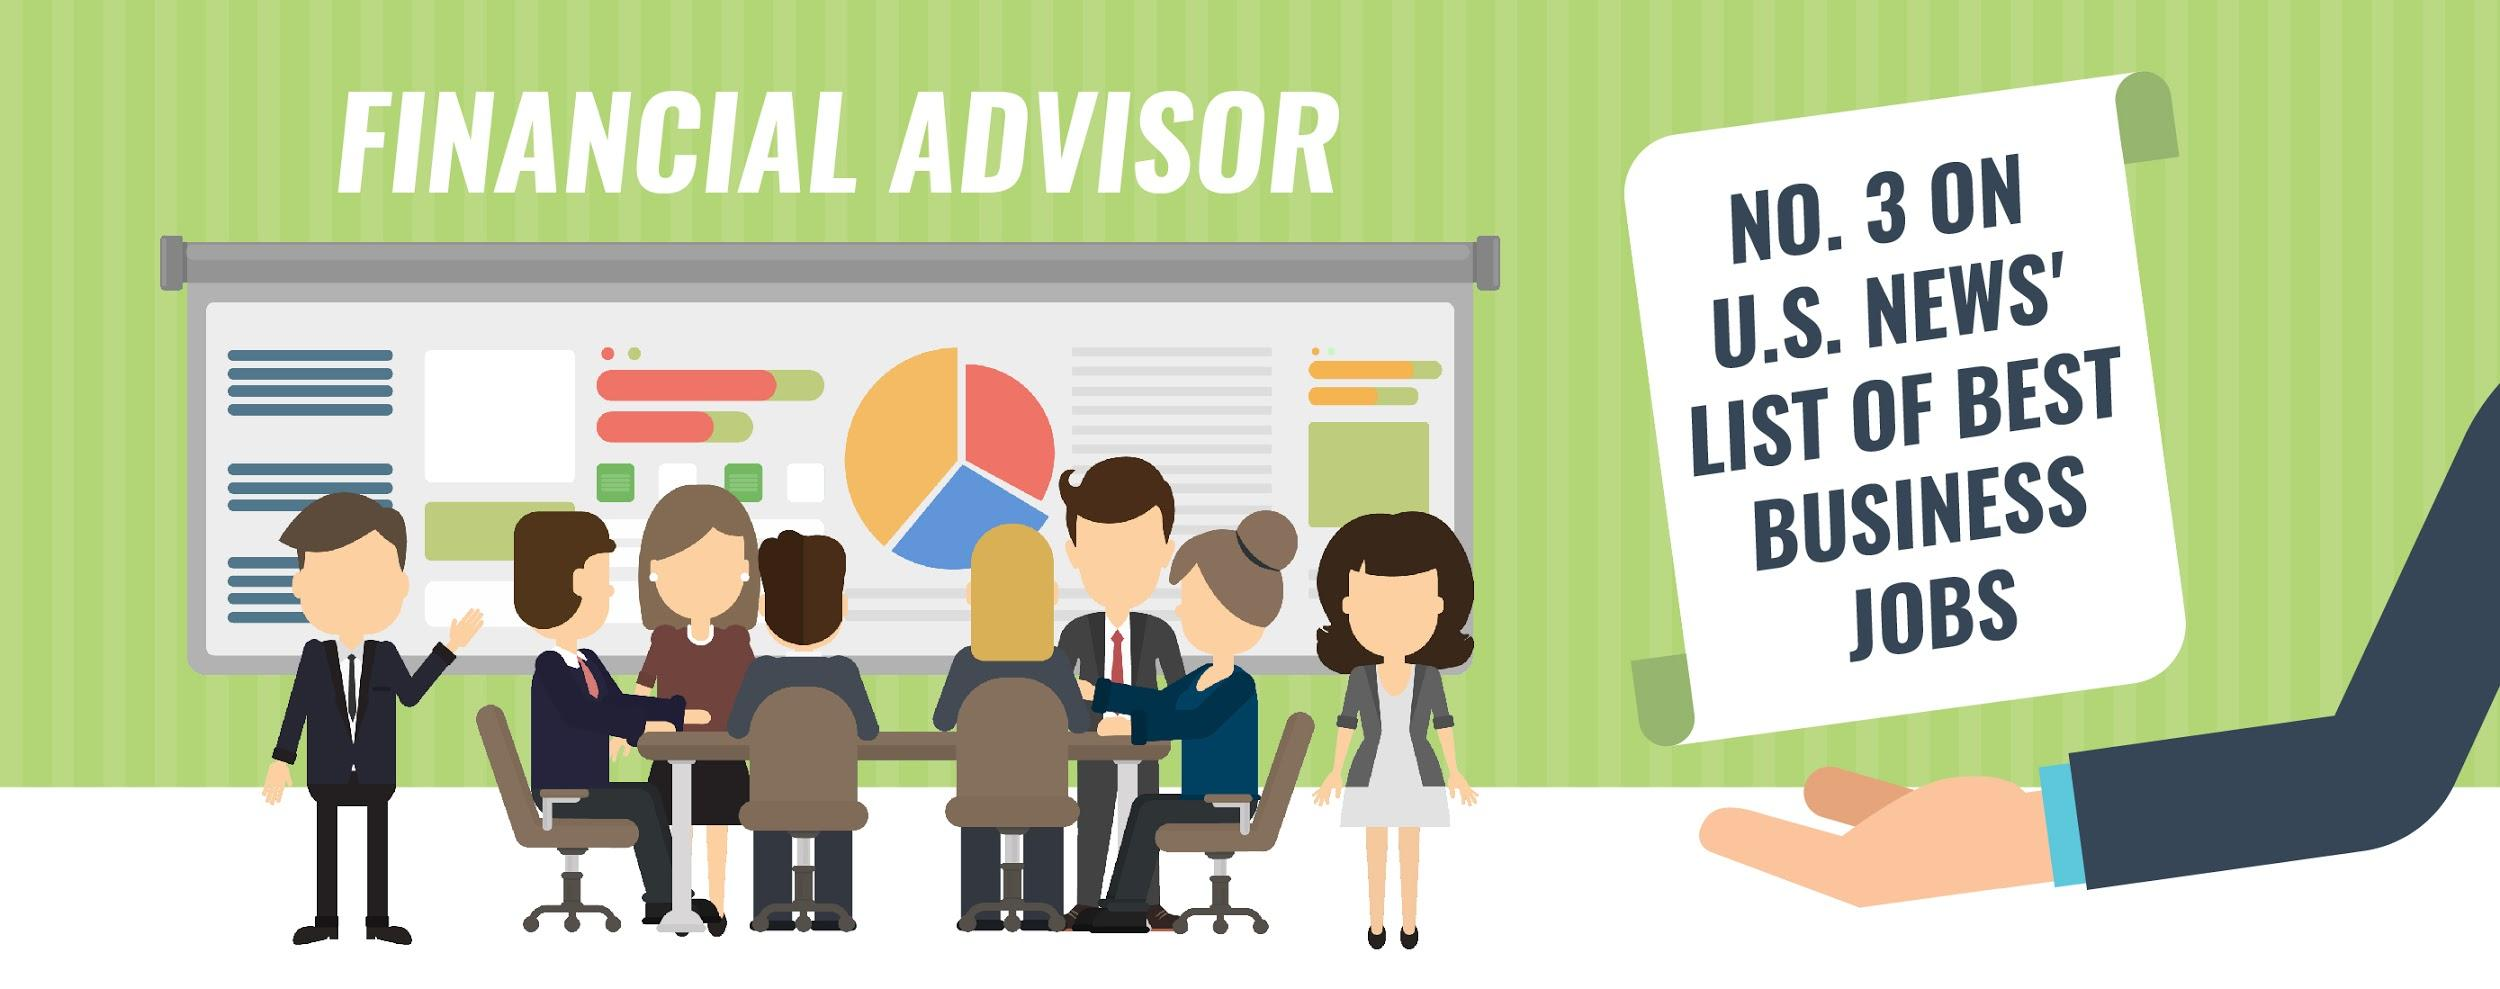 financial advisor is ranked top 3 business jobs